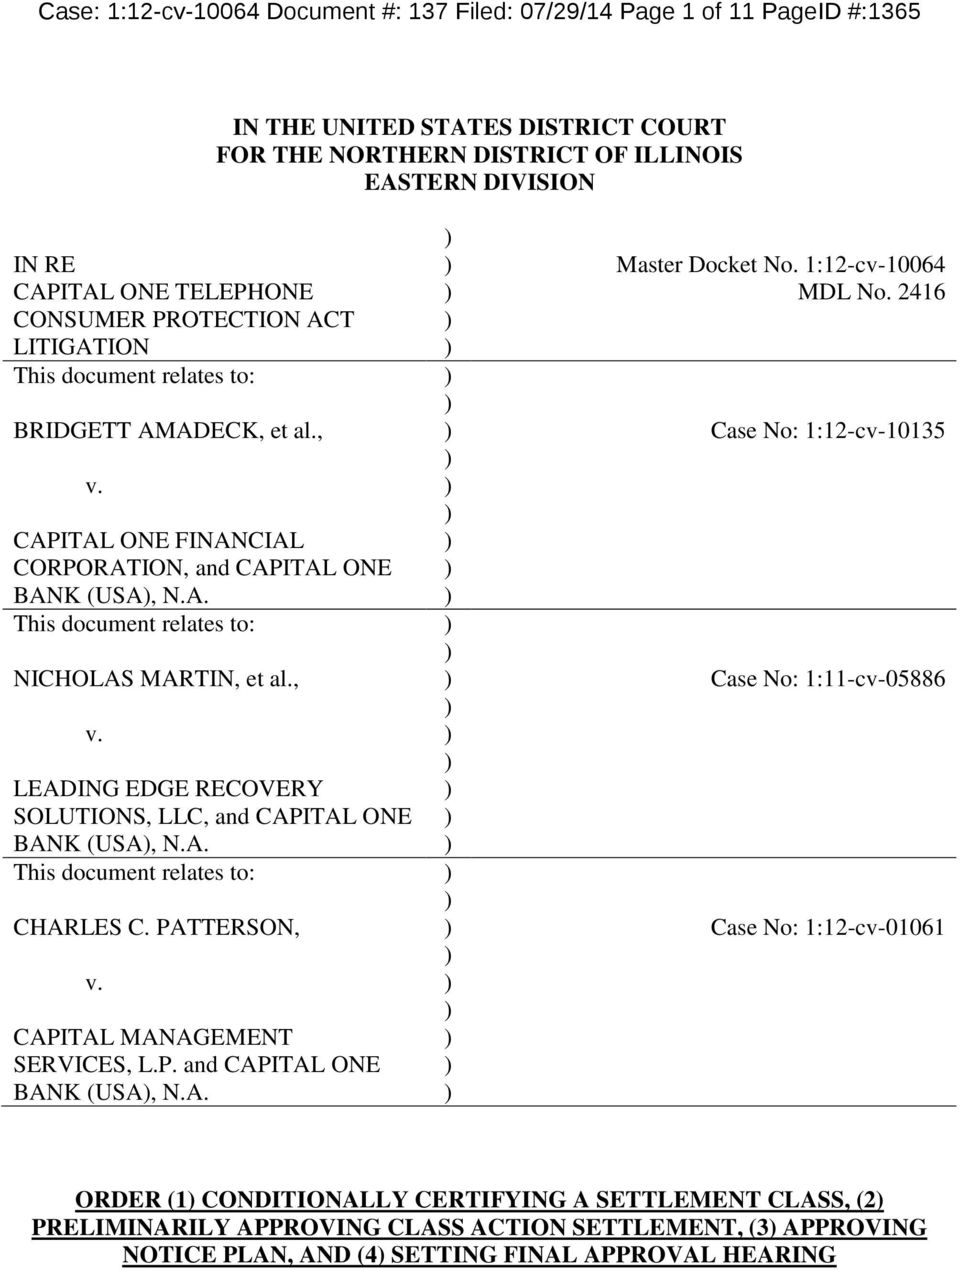 , v. LEADING EDGE RECOVERY SOLUTIONS, LLC, and CAPITAL ONE BANK (USA, N.A. This document relates to: CHARLES C. PATTERSON, v. CAPITAL MANAGEMENT SERVICES, L.P. and CAPITAL ONE BANK (USA, N.A. Master Docket No.